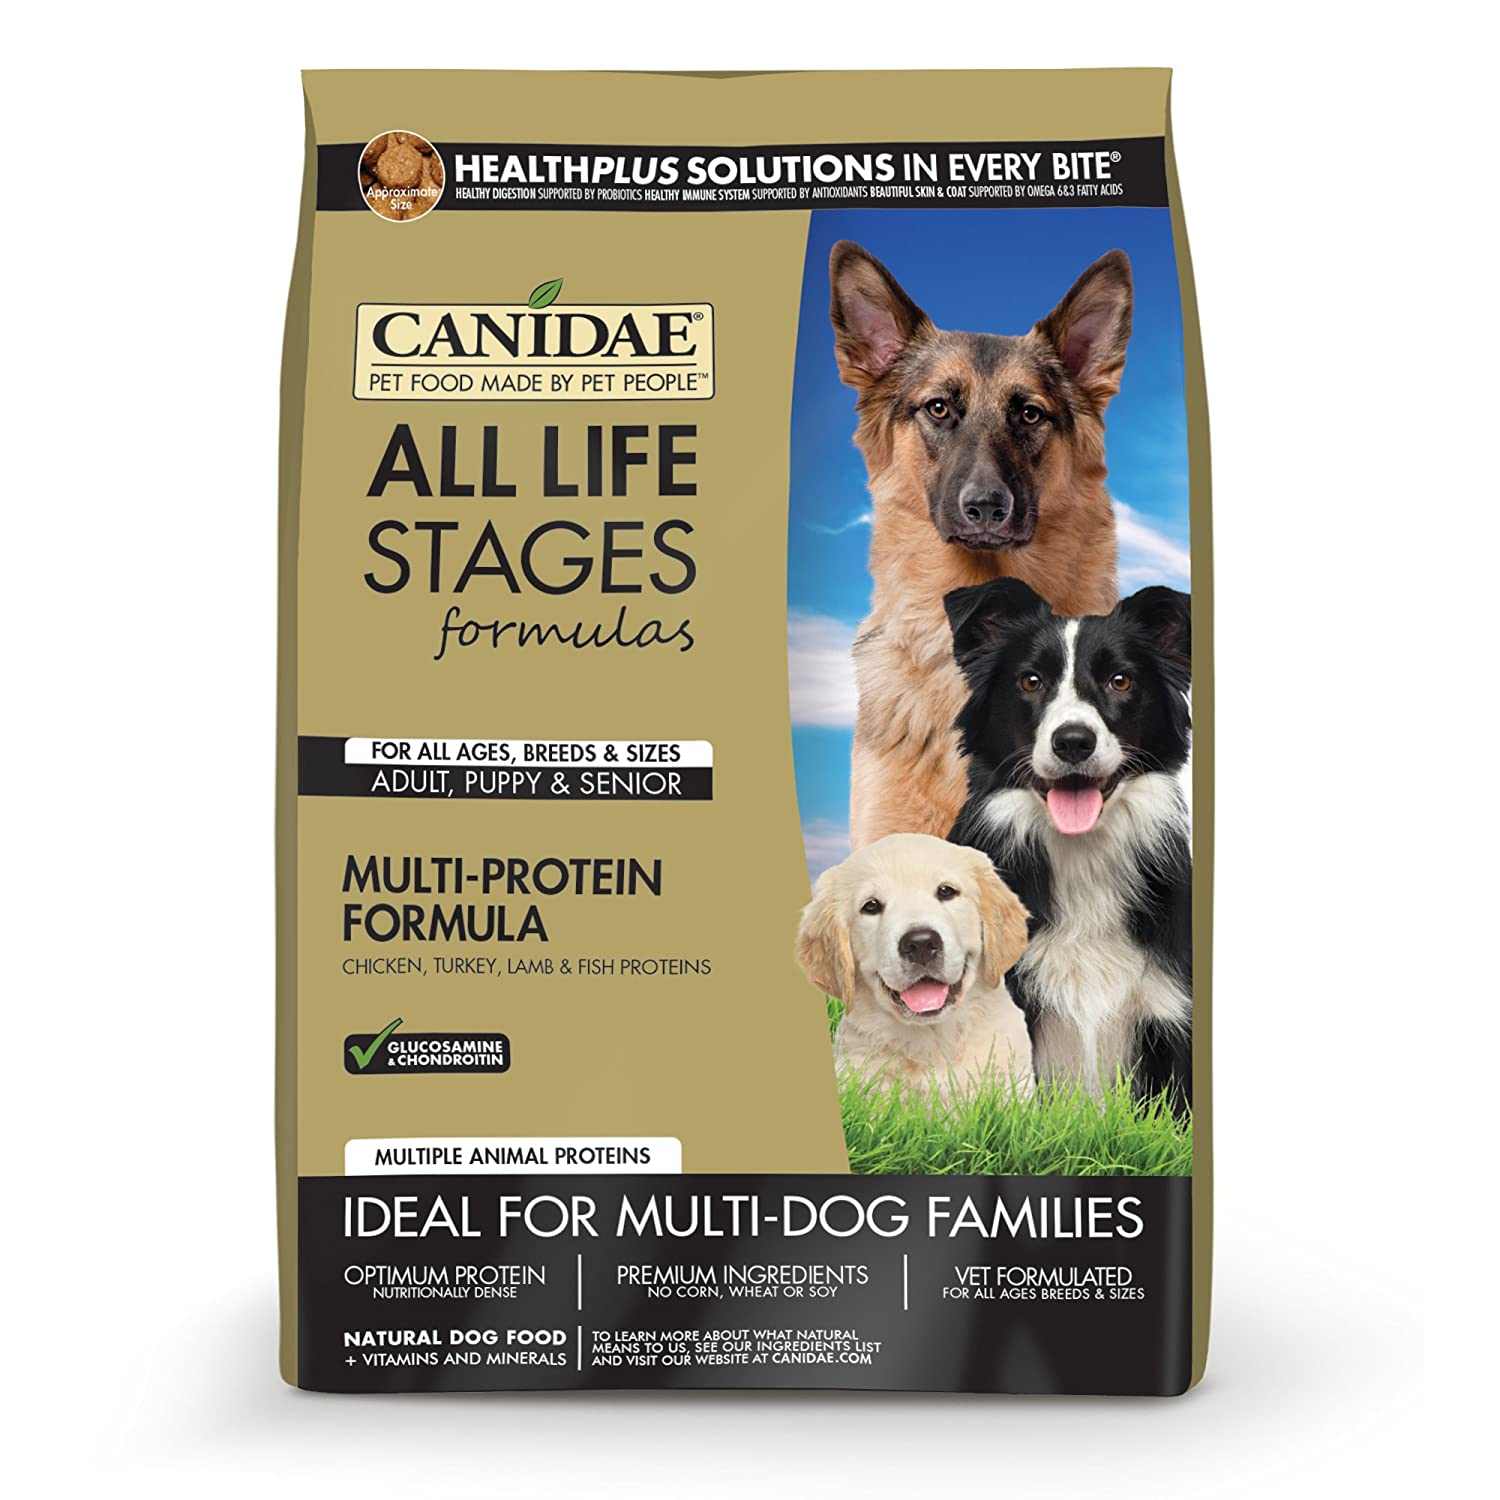 CANIDAE Life Stages Dry Dog Food for Puppies, Adults & Seniors